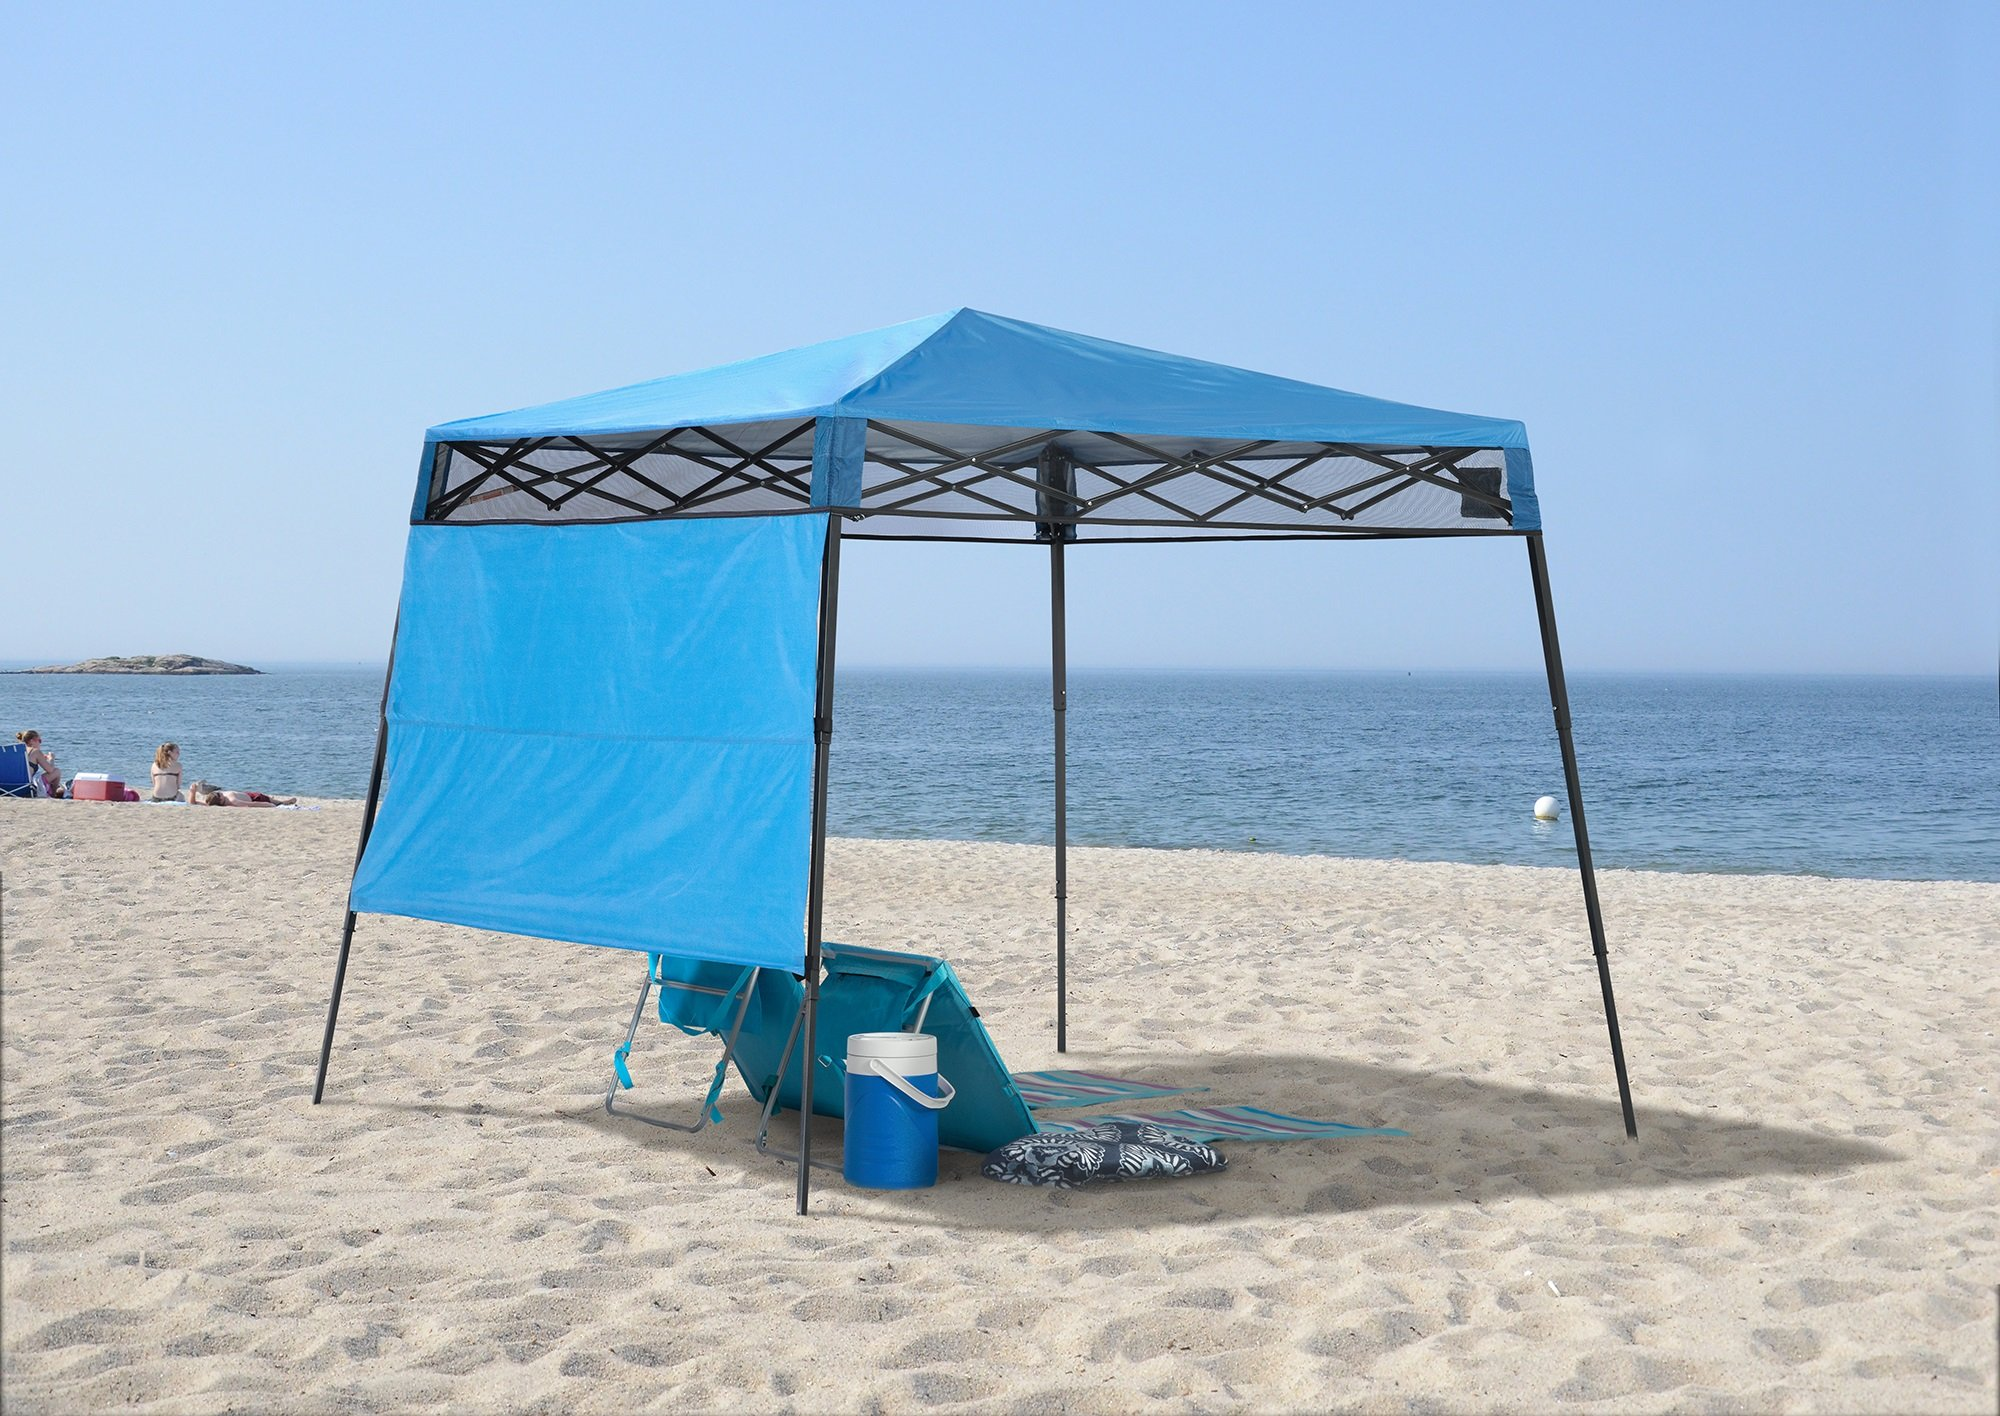 Quik Shade GO Hybrid Compact Slant Leg Backpack Canopy, Blue, 7 x 7-Foot by Quik Shade Pets (Image #2)